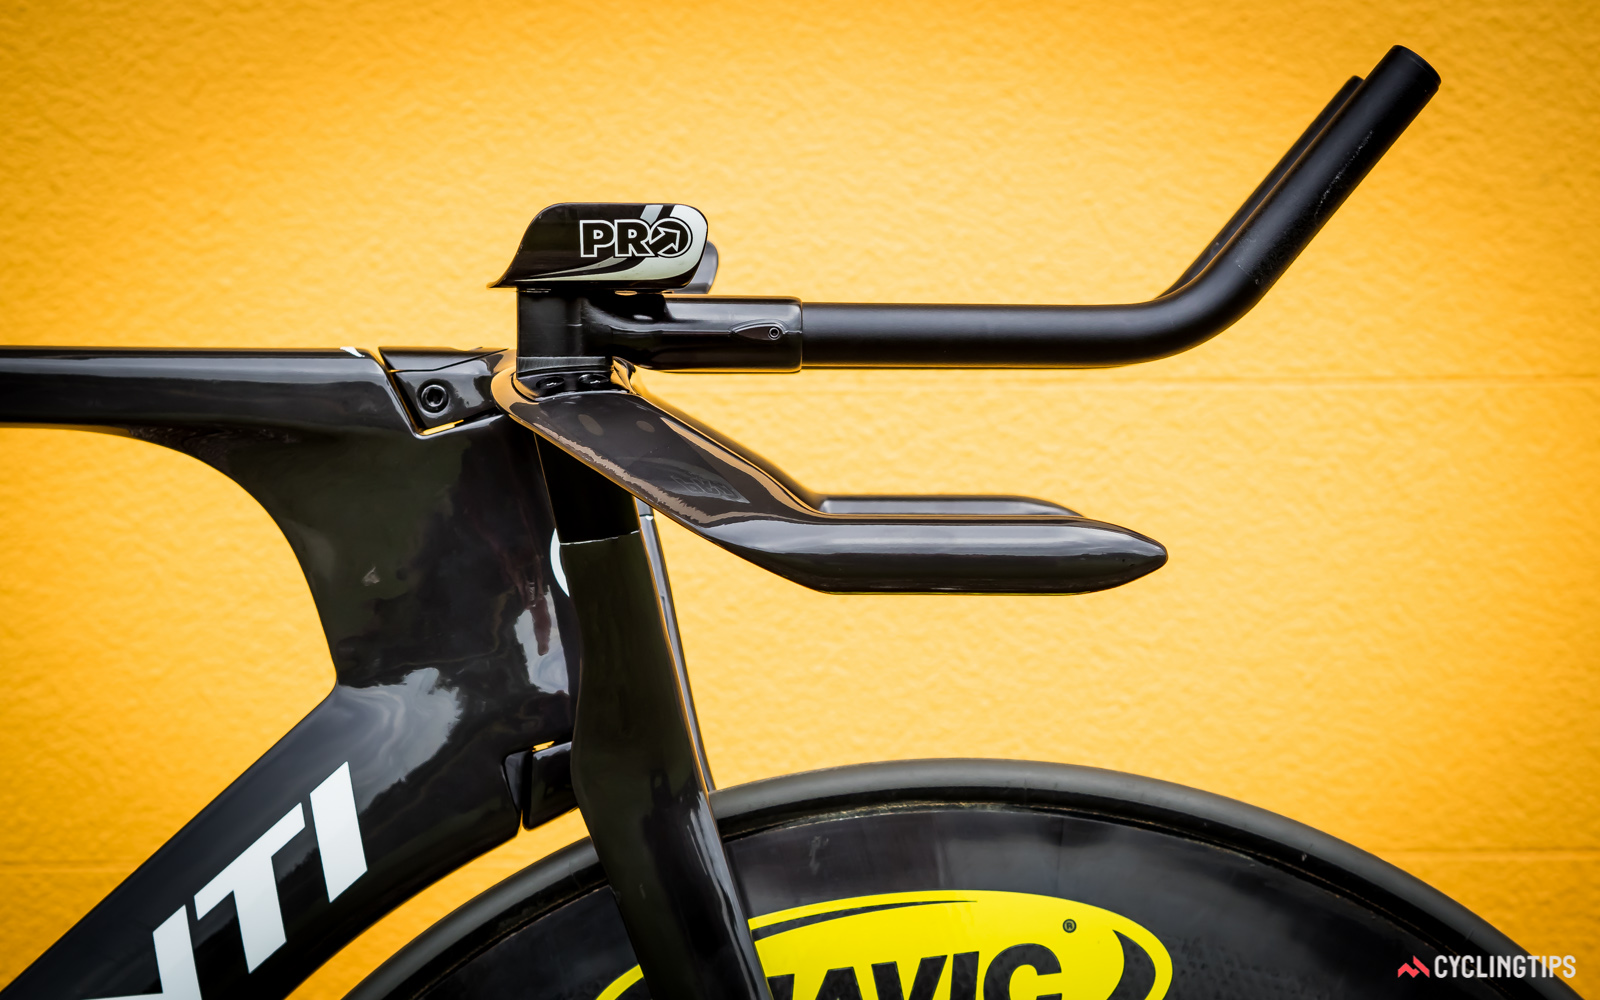 This production version of the pursuit bike makes use of stock handlebar extension: each member of New Zealand's pursuit teams get custom 3D-printed titanium extensions for a perfect fit.